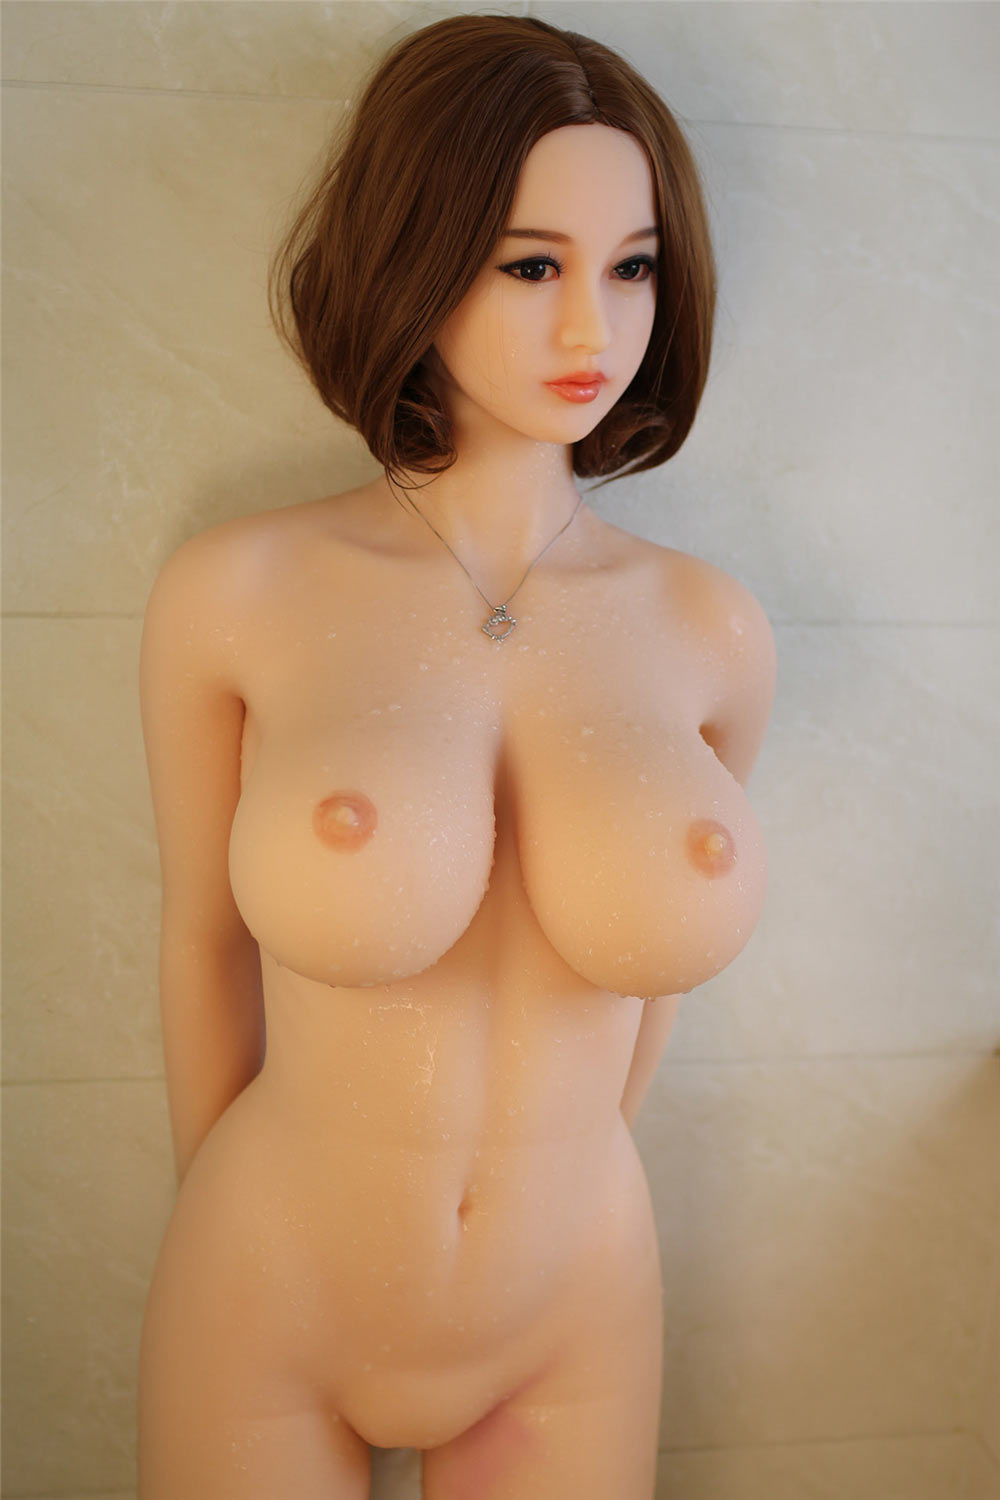 Sex doll with naked hands behind his back